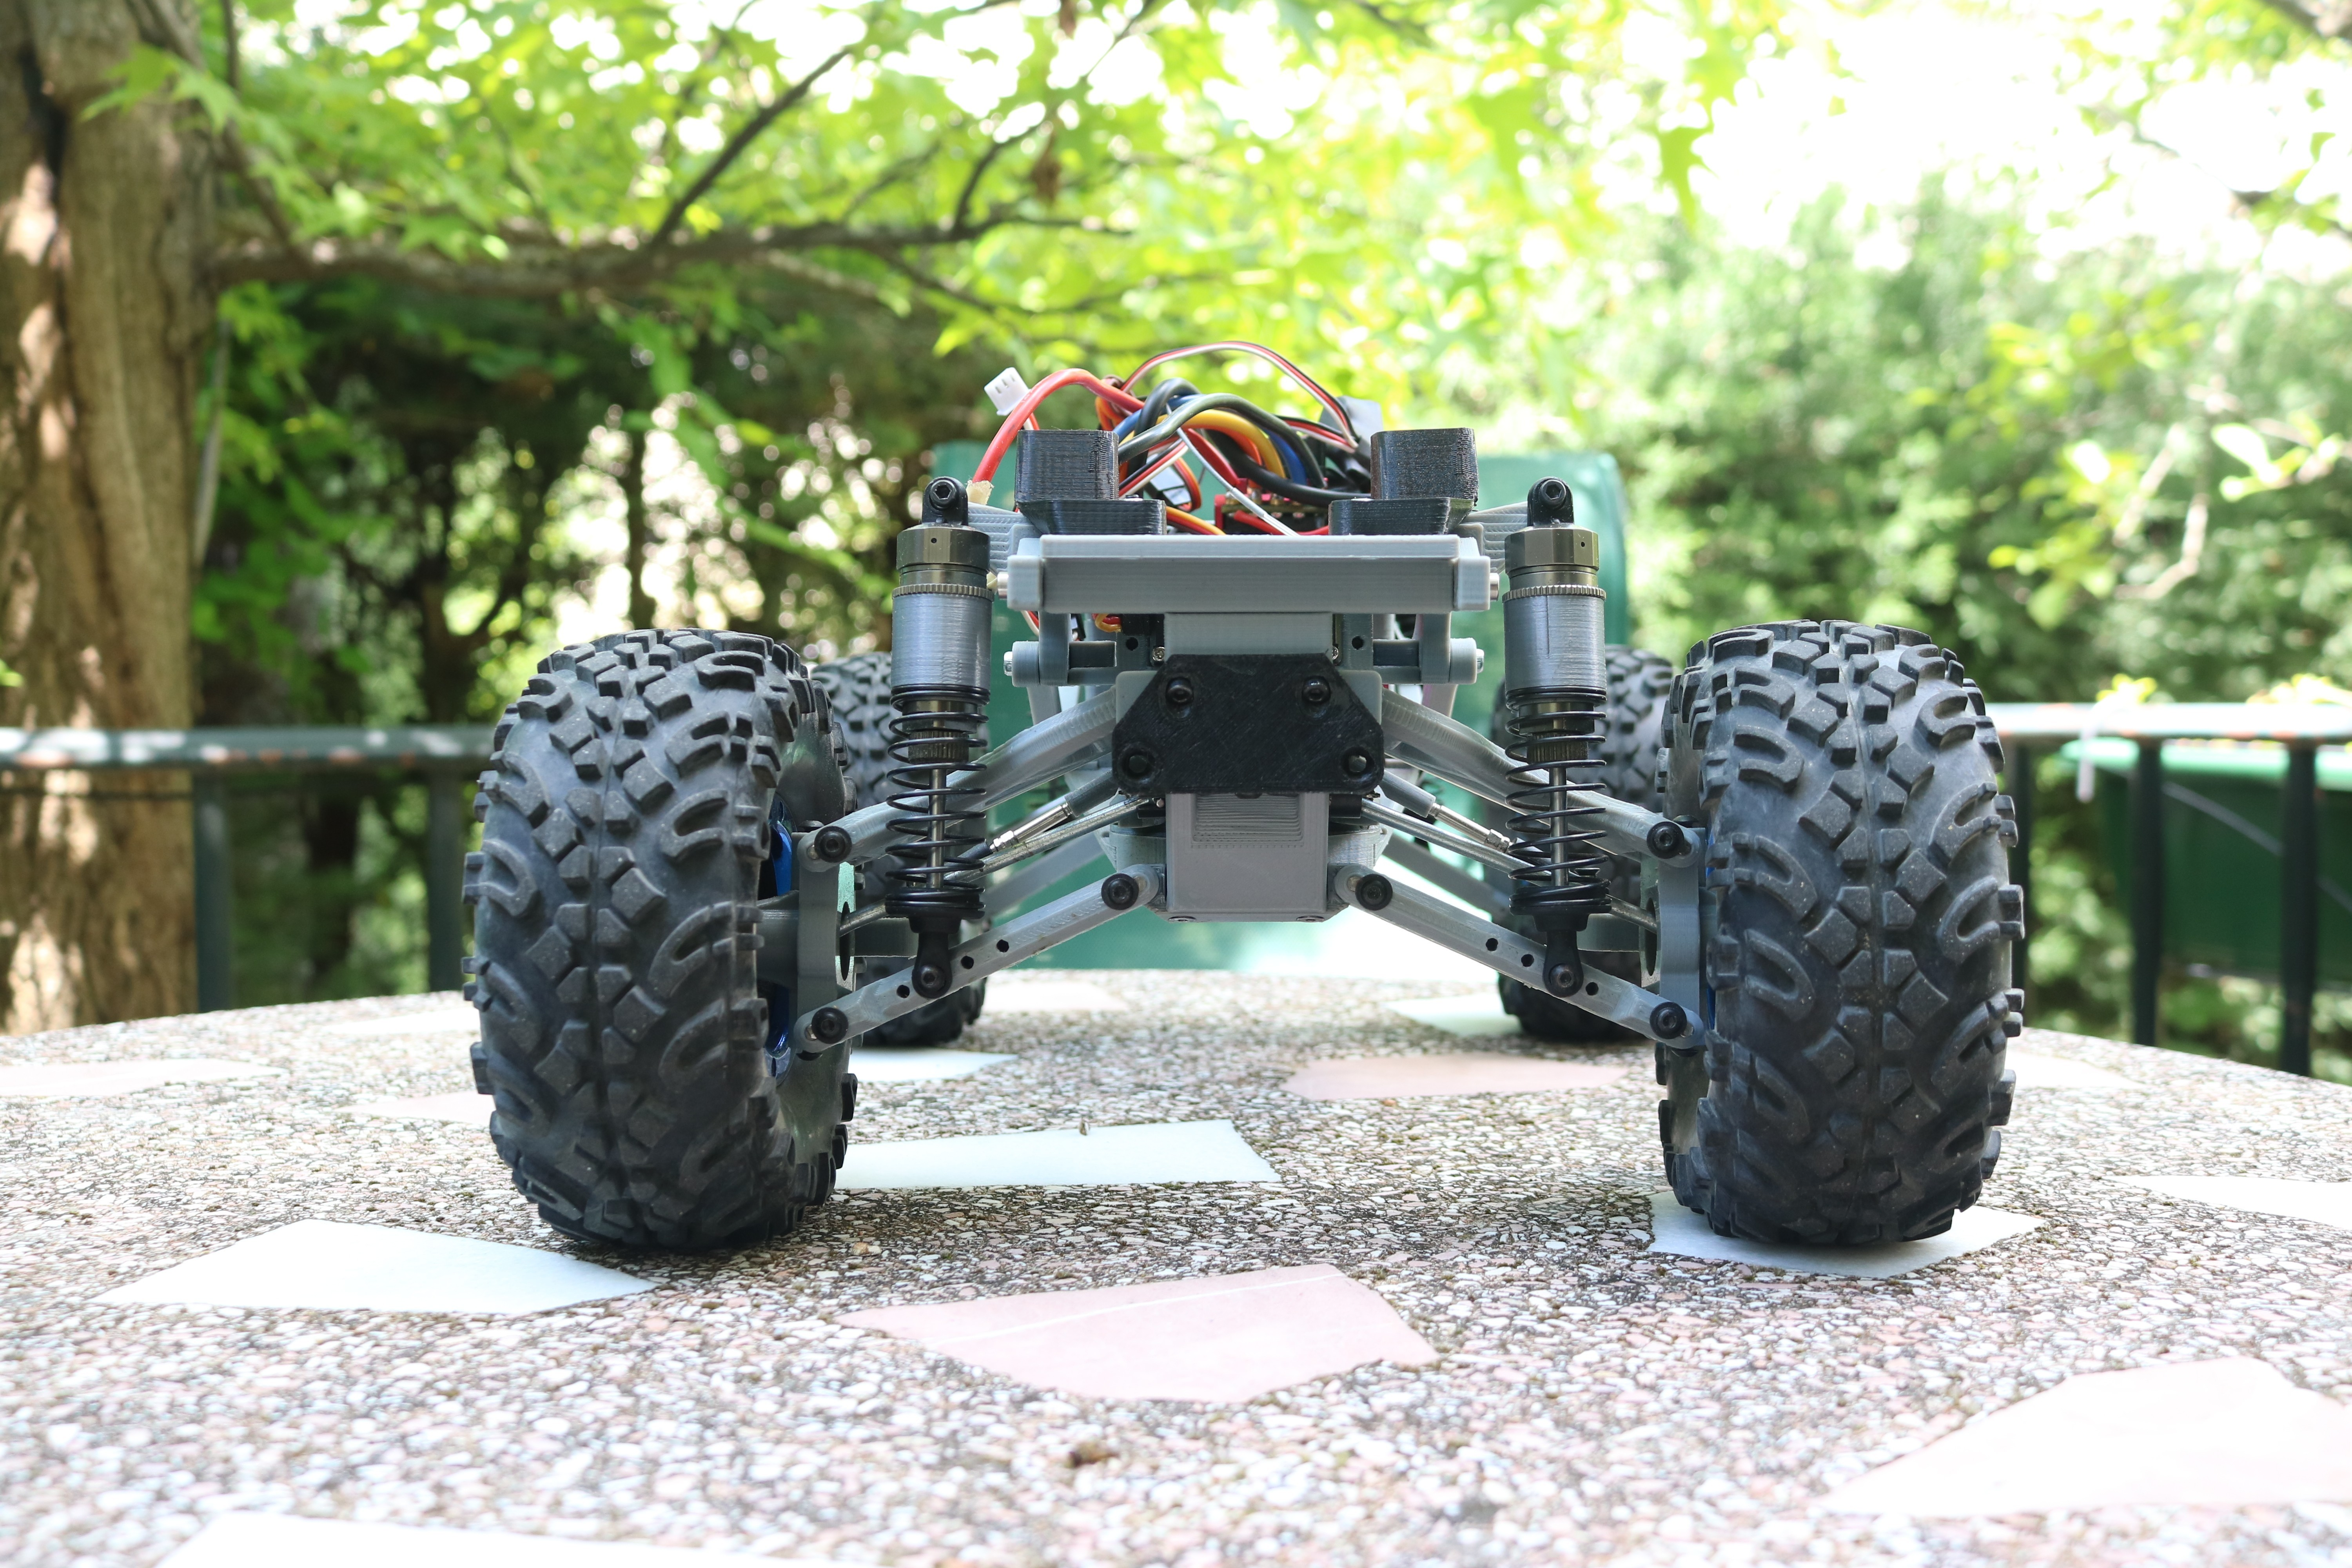 IMG_3667.JPG Download STL file MyRCCar 1/10 MTC Chassis Updated. Customizable chassis for Monster Truck, Crawler or Scale RC Car • 3D printer model, dlb5